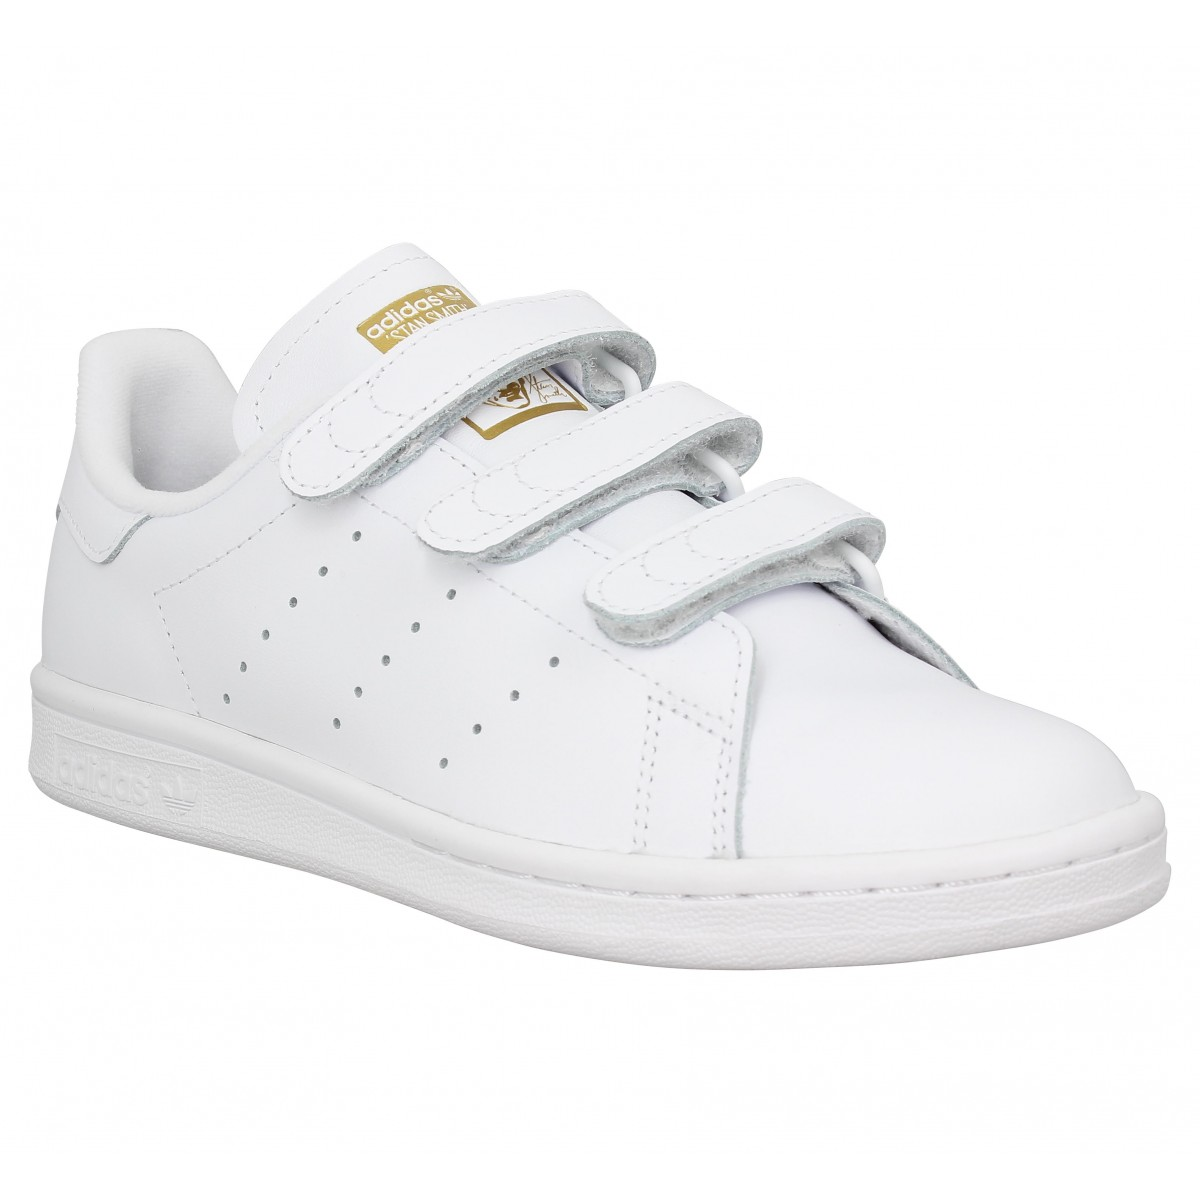 finest selection e3fb3 e62c1 Baskets ADIDAS Stan Smith velcro cuir Femme Blanc